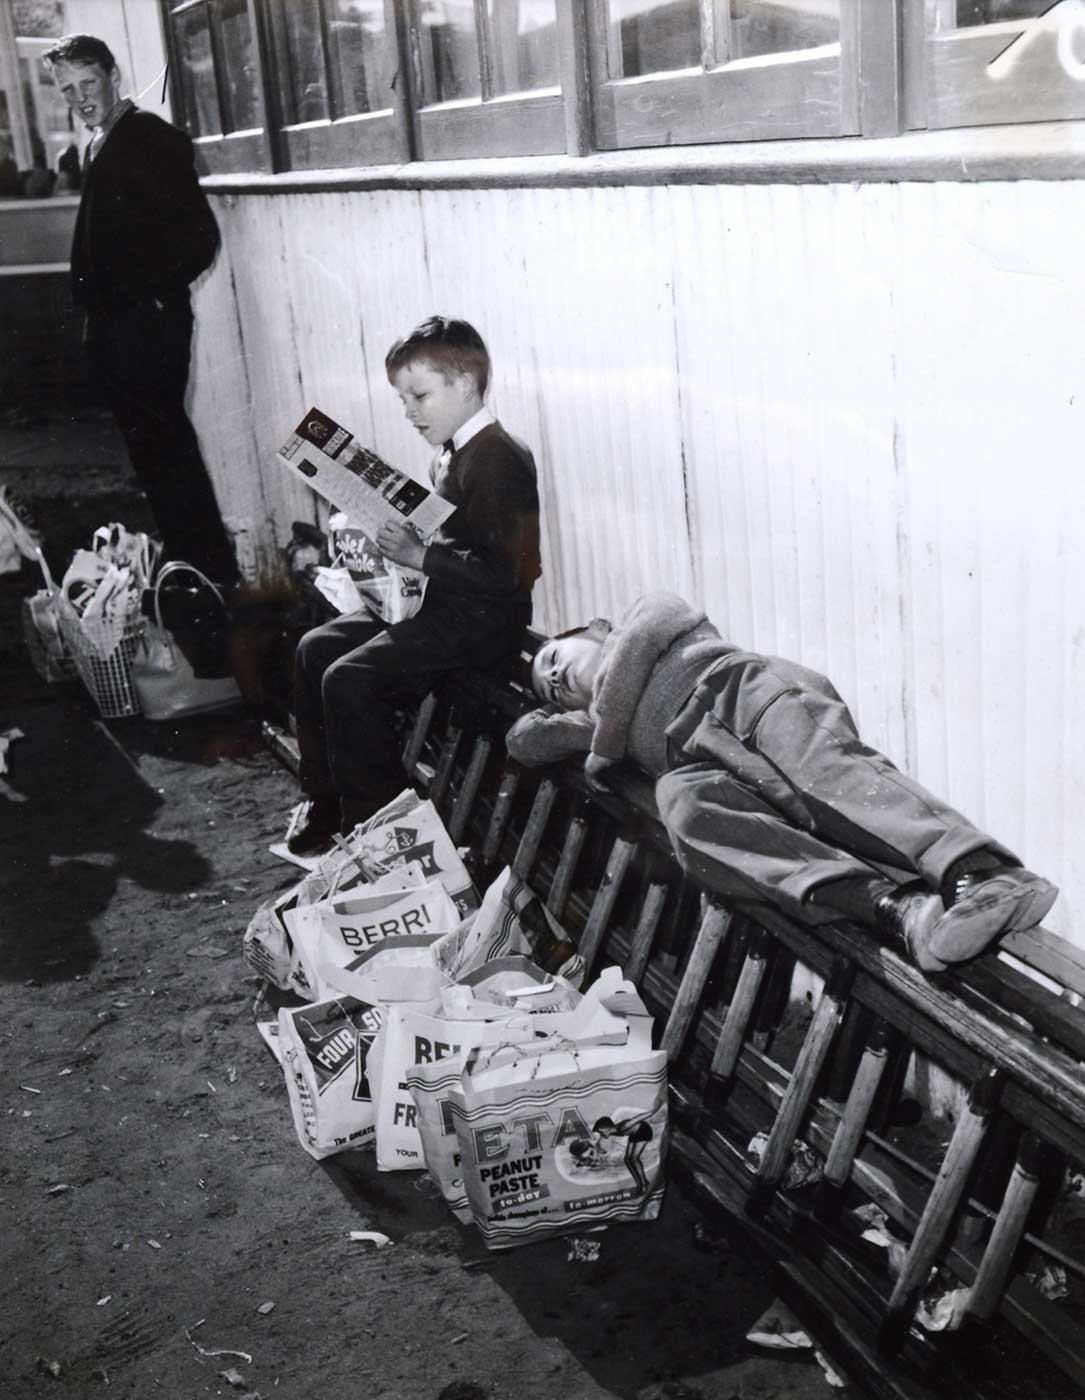 Black and white photograph showing two young boys, one lying with his eyes closed, on a ladder which rests longways, alongside a wall. Several show bags are lined up beneath him. Beside him, another boy sits reading. - click to view larger image